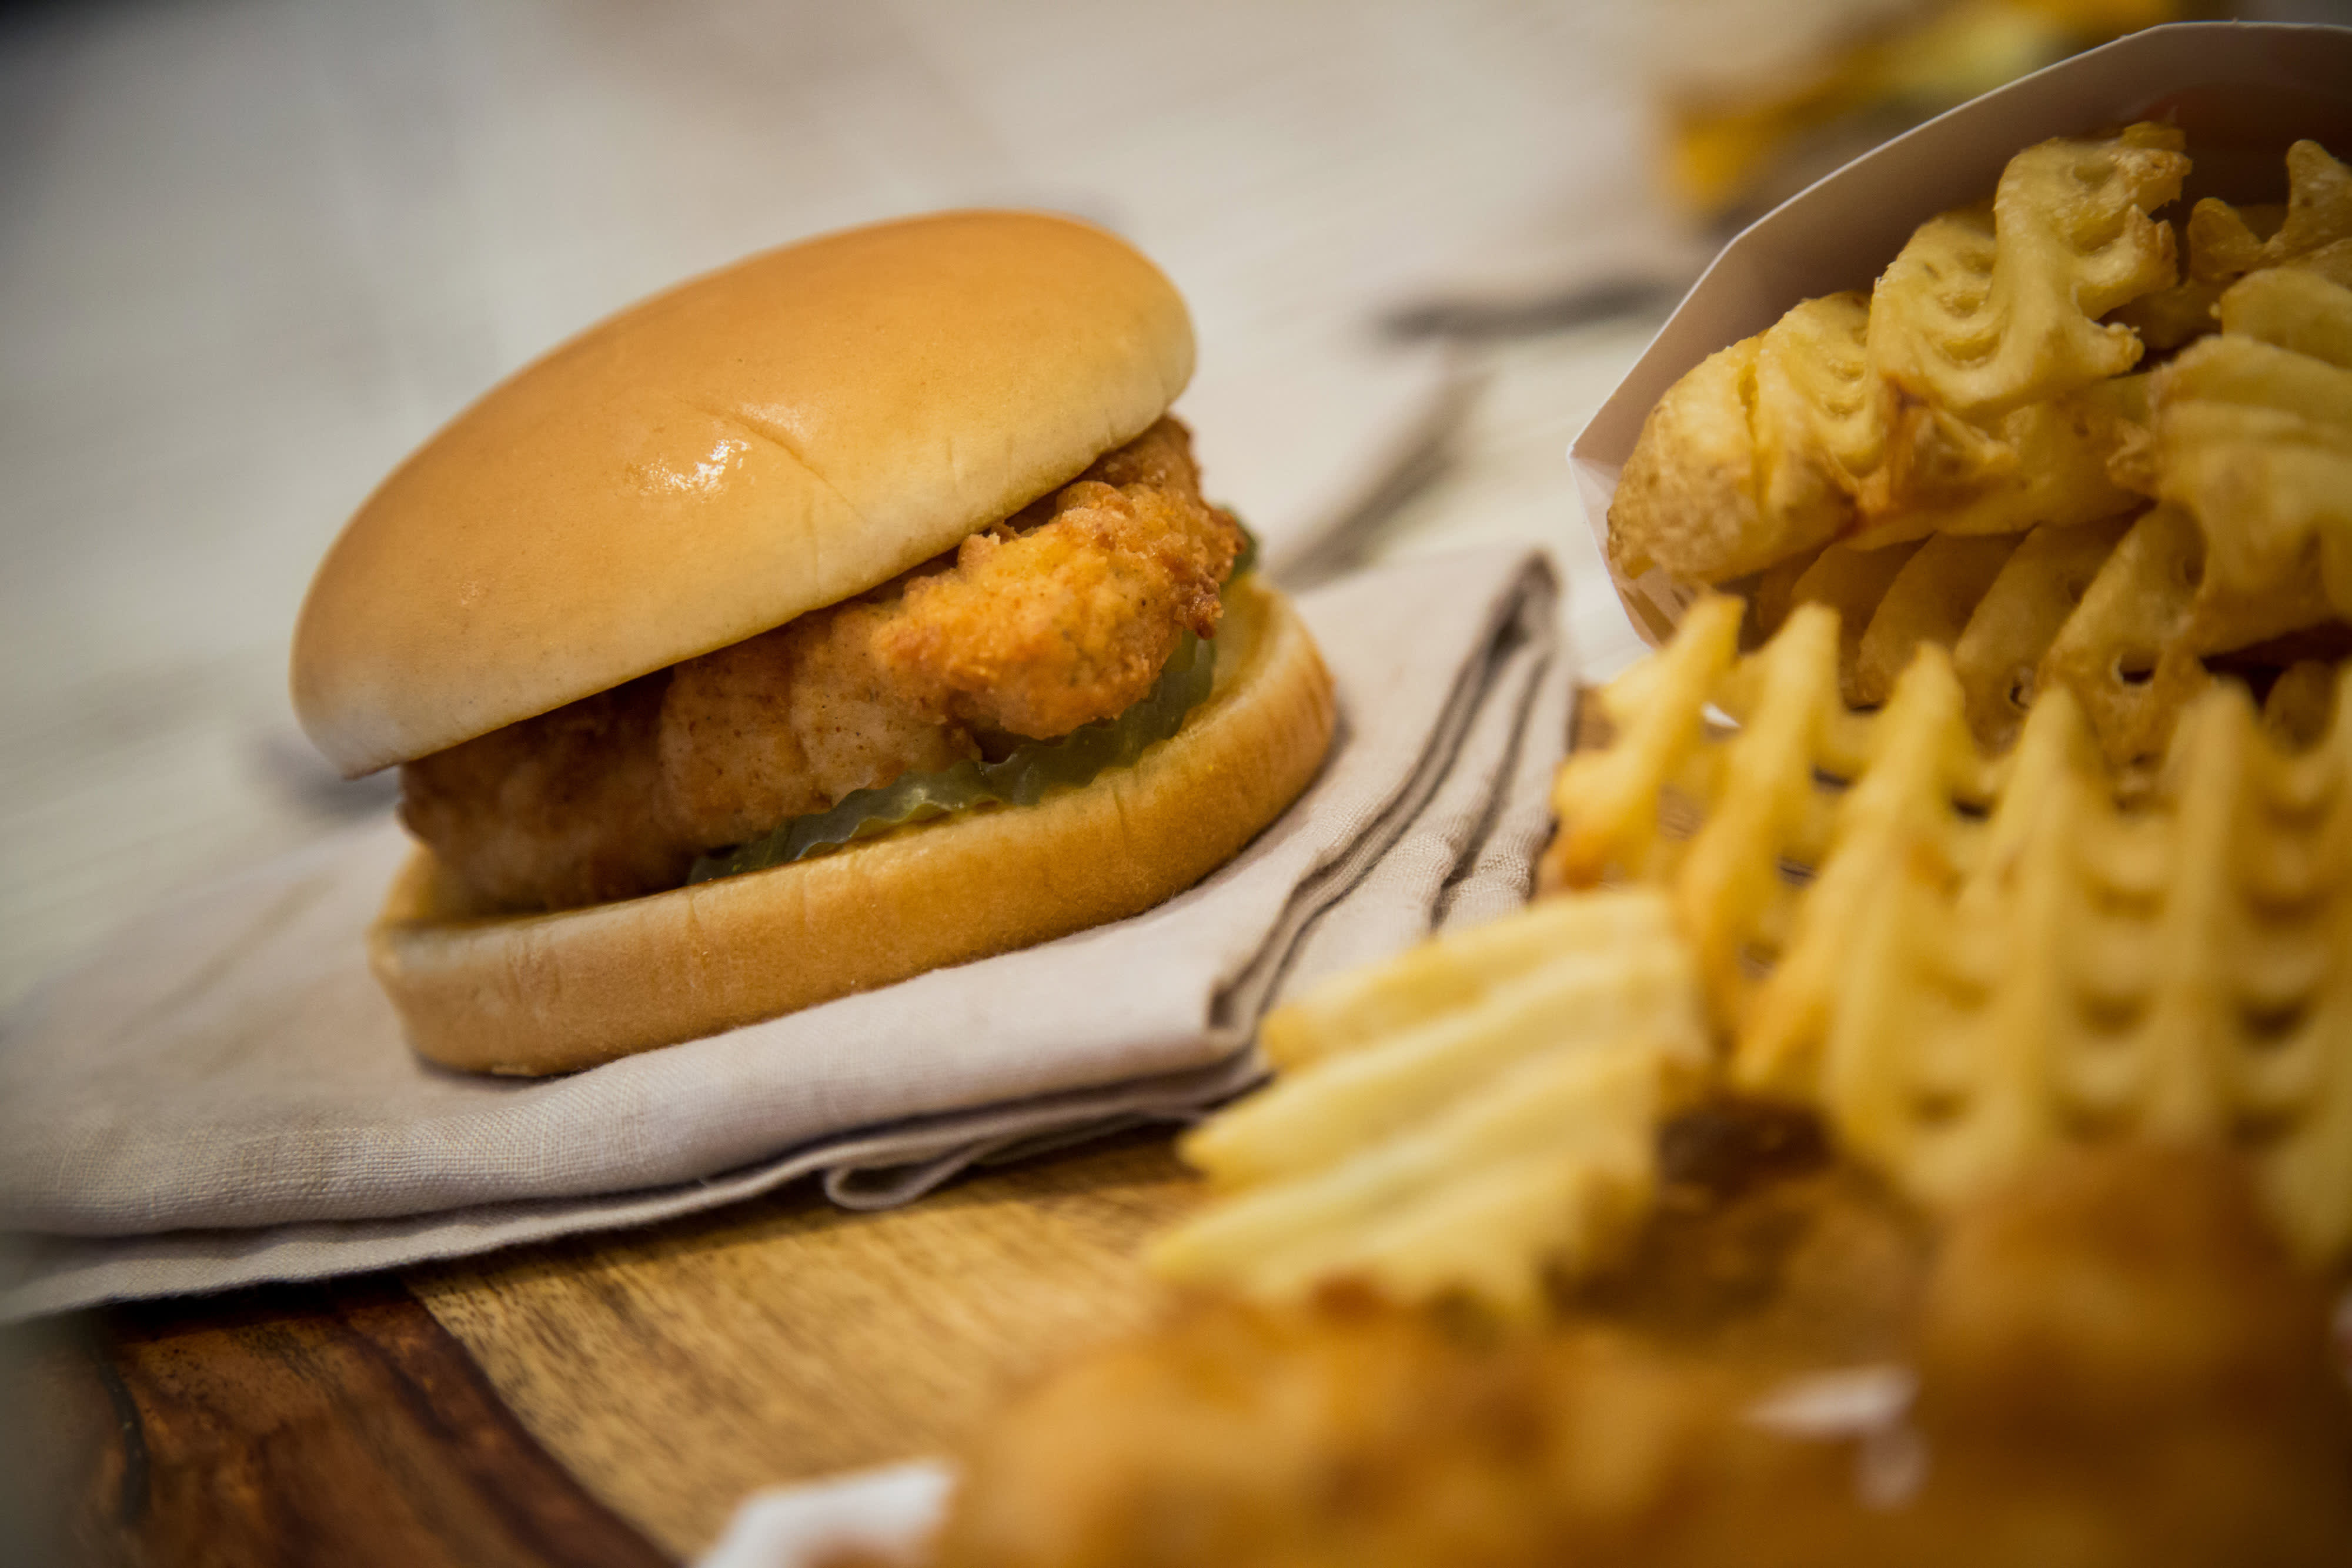 36483e2e0 McDonald's US franchisees ask for a Southern-style chicken sandwich to  compete with Chick-fil-A